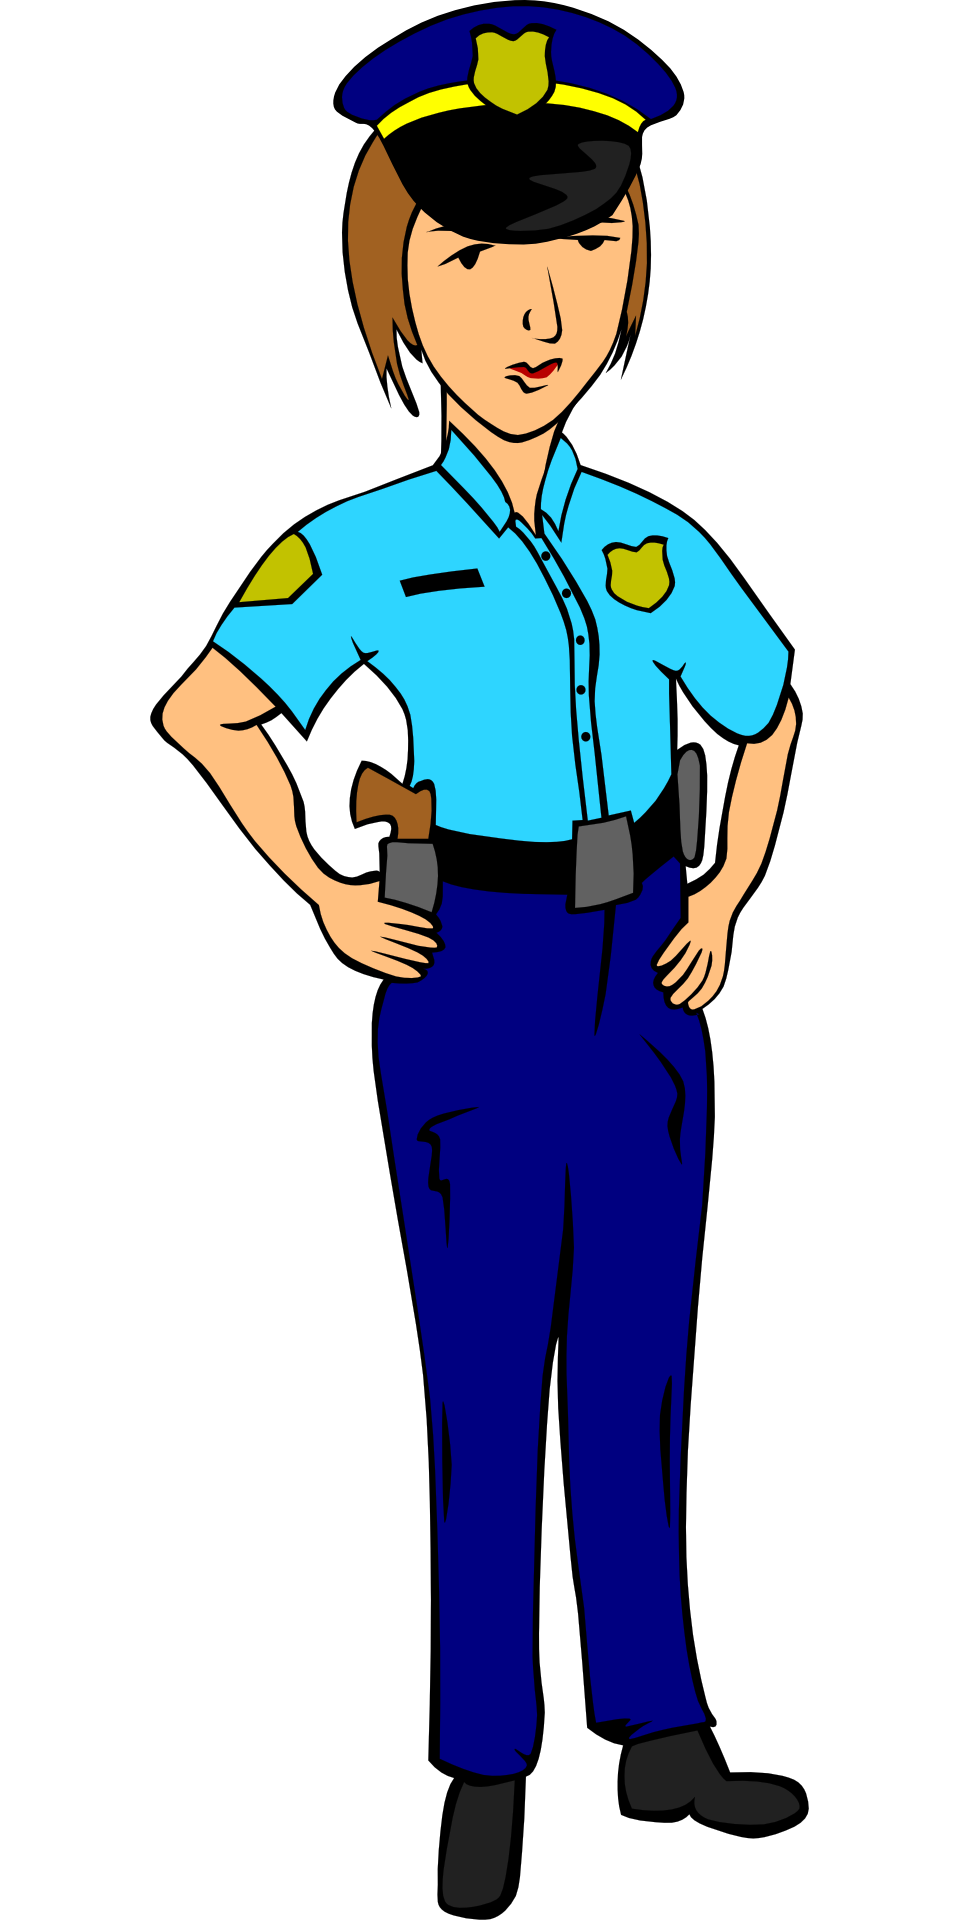 hats clipart police man